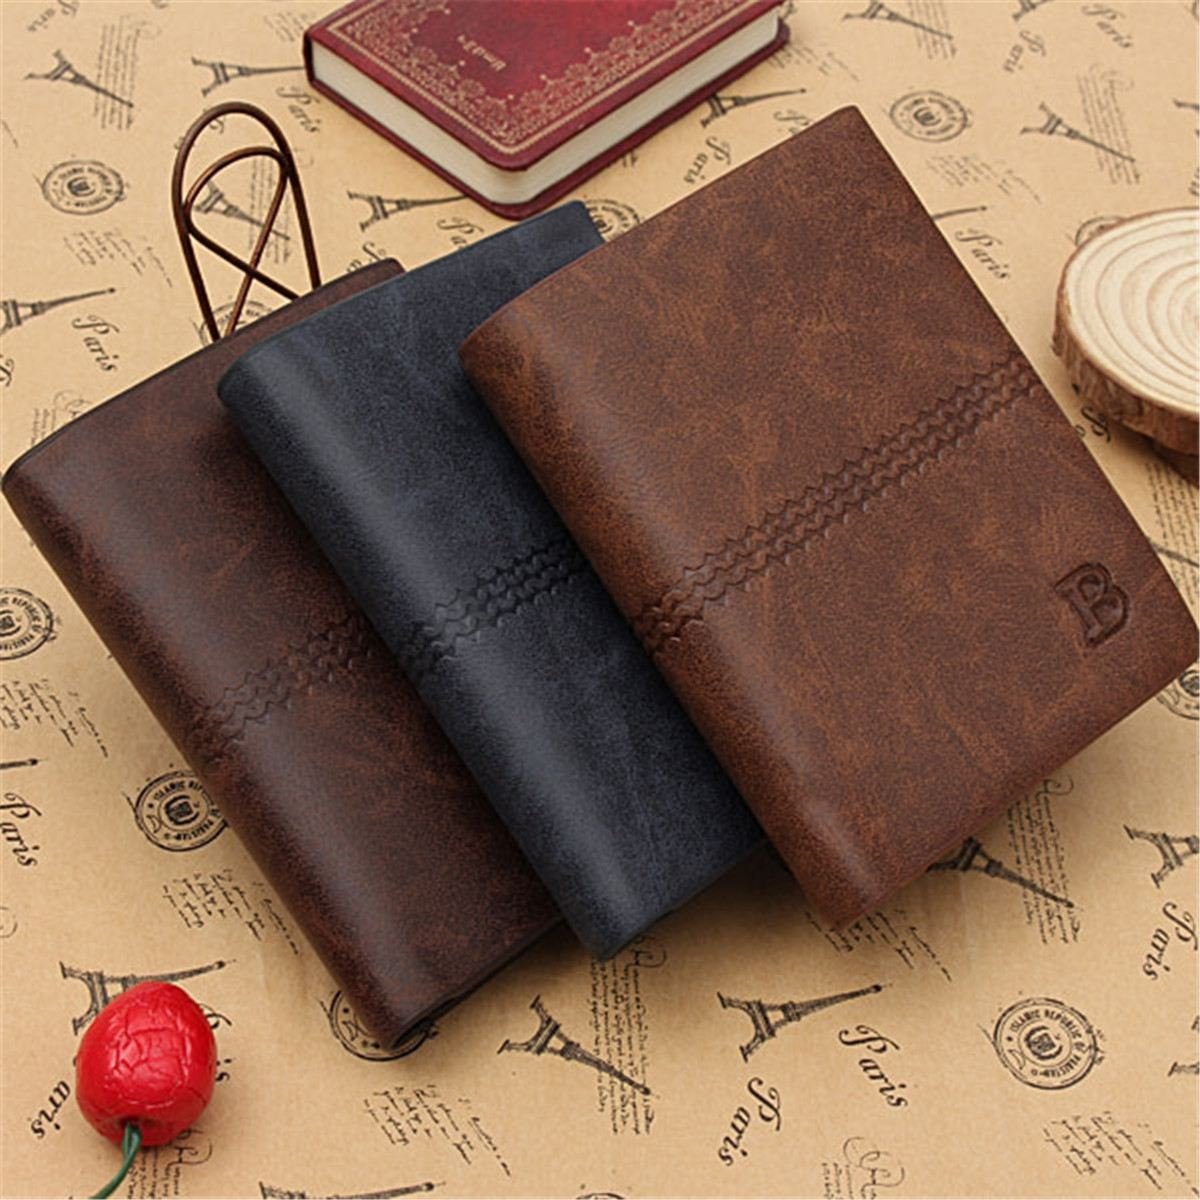 Kicute Pu Leather Men S Wallet Business Credit Card Holder Money